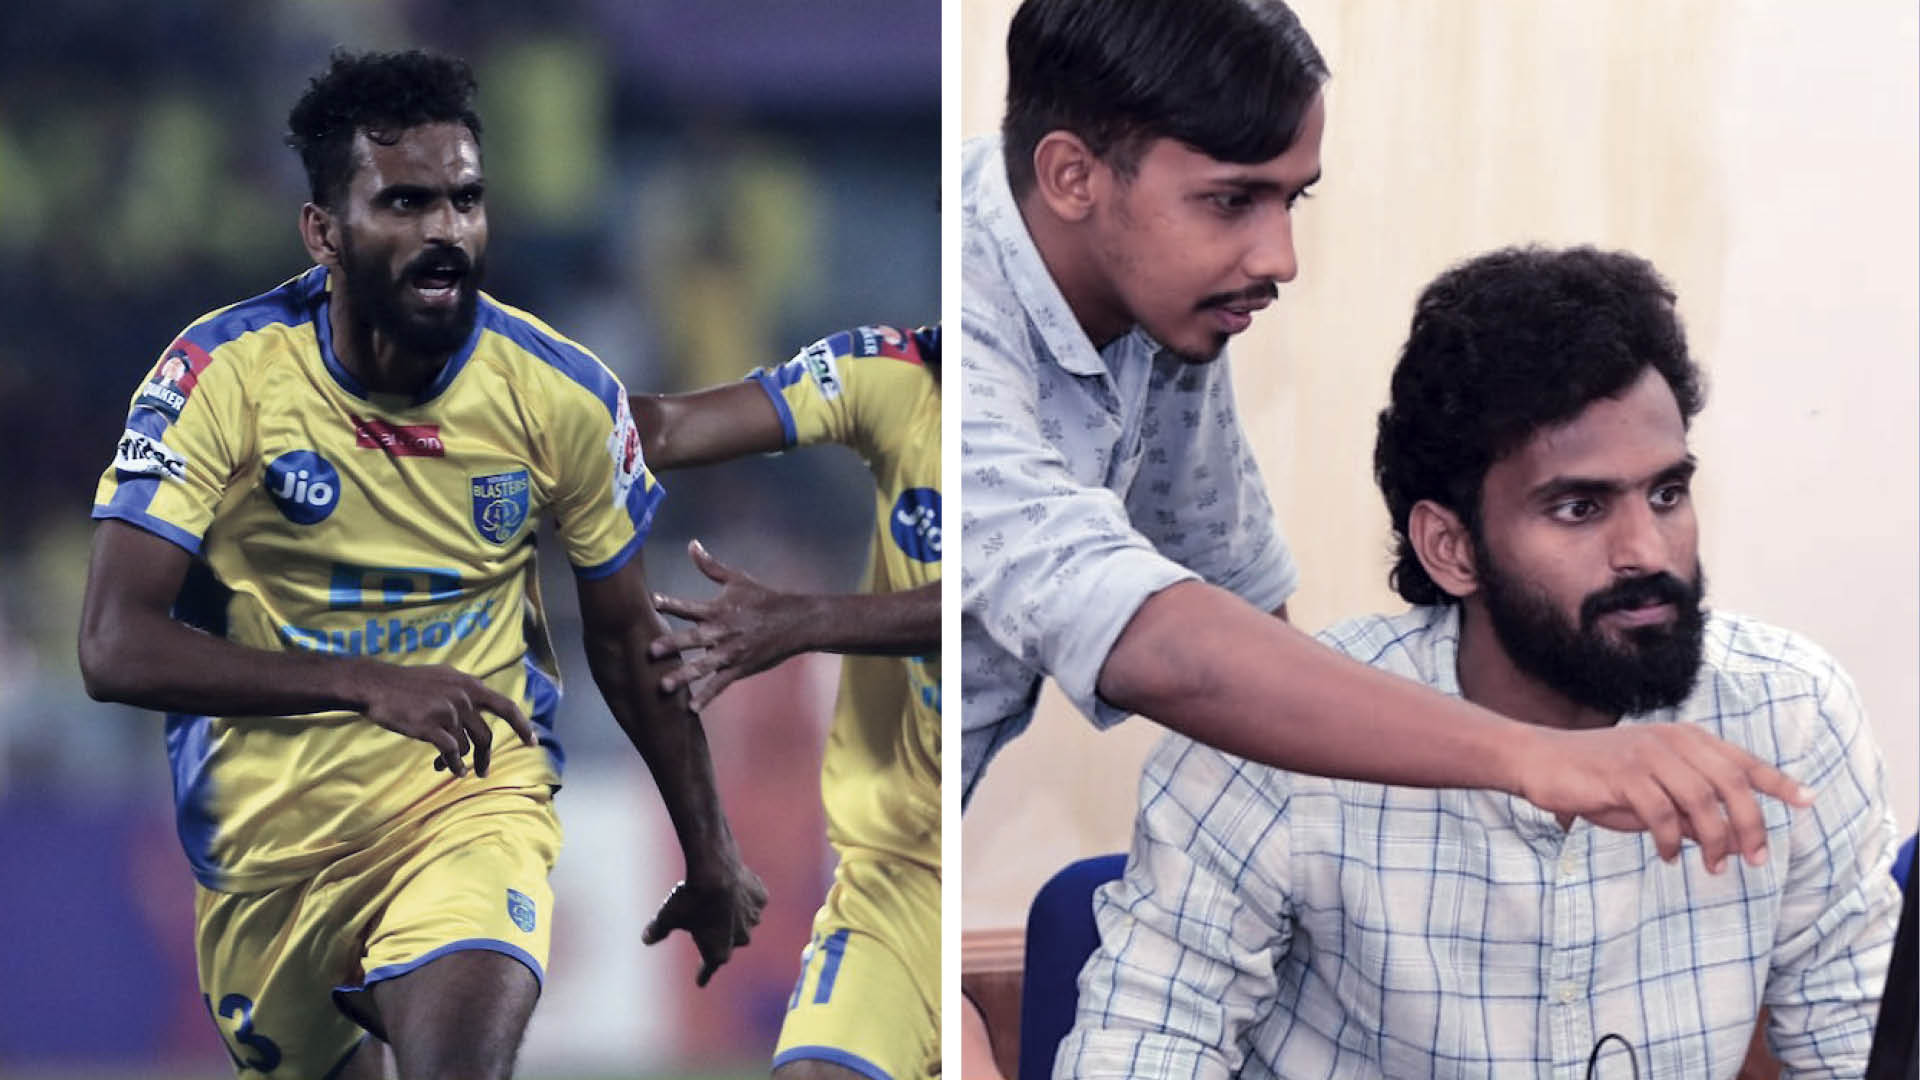 Indian footballer CK Vineeth working as volunteer in Covid-19 efforts in Kerala.